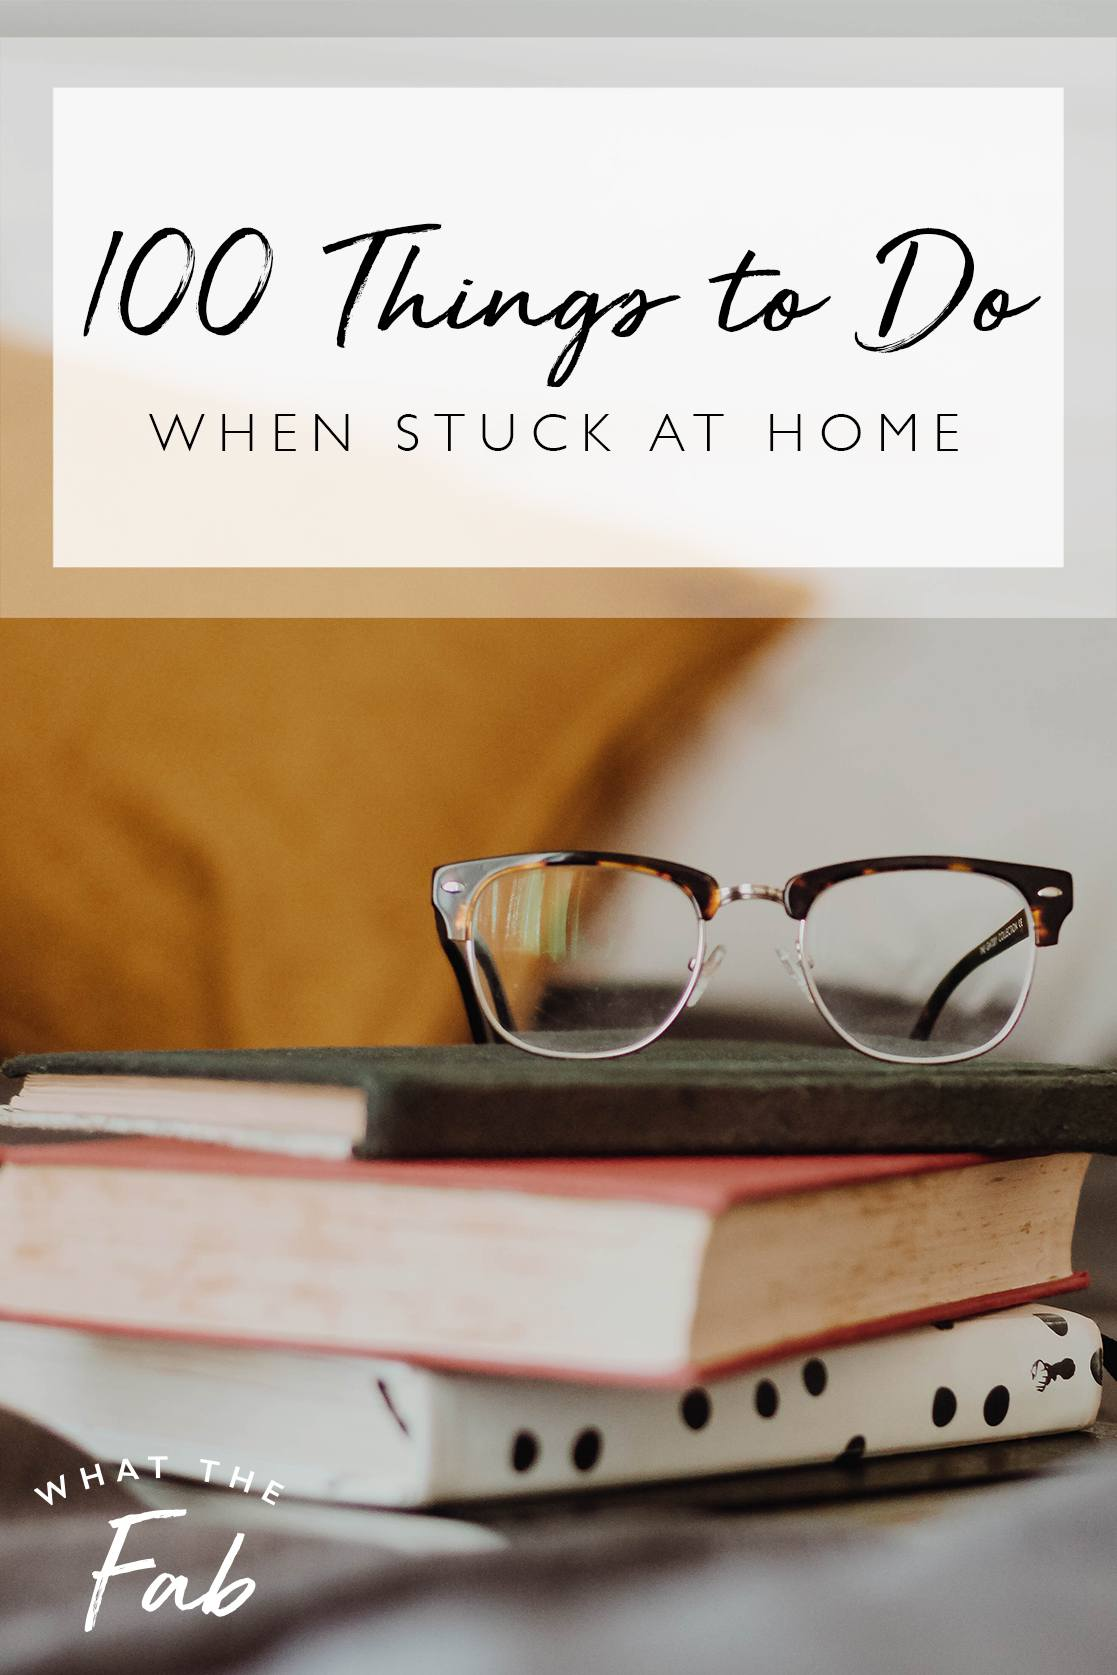 100 things to do when stuck at home, by lifestyle blogger What The Fab